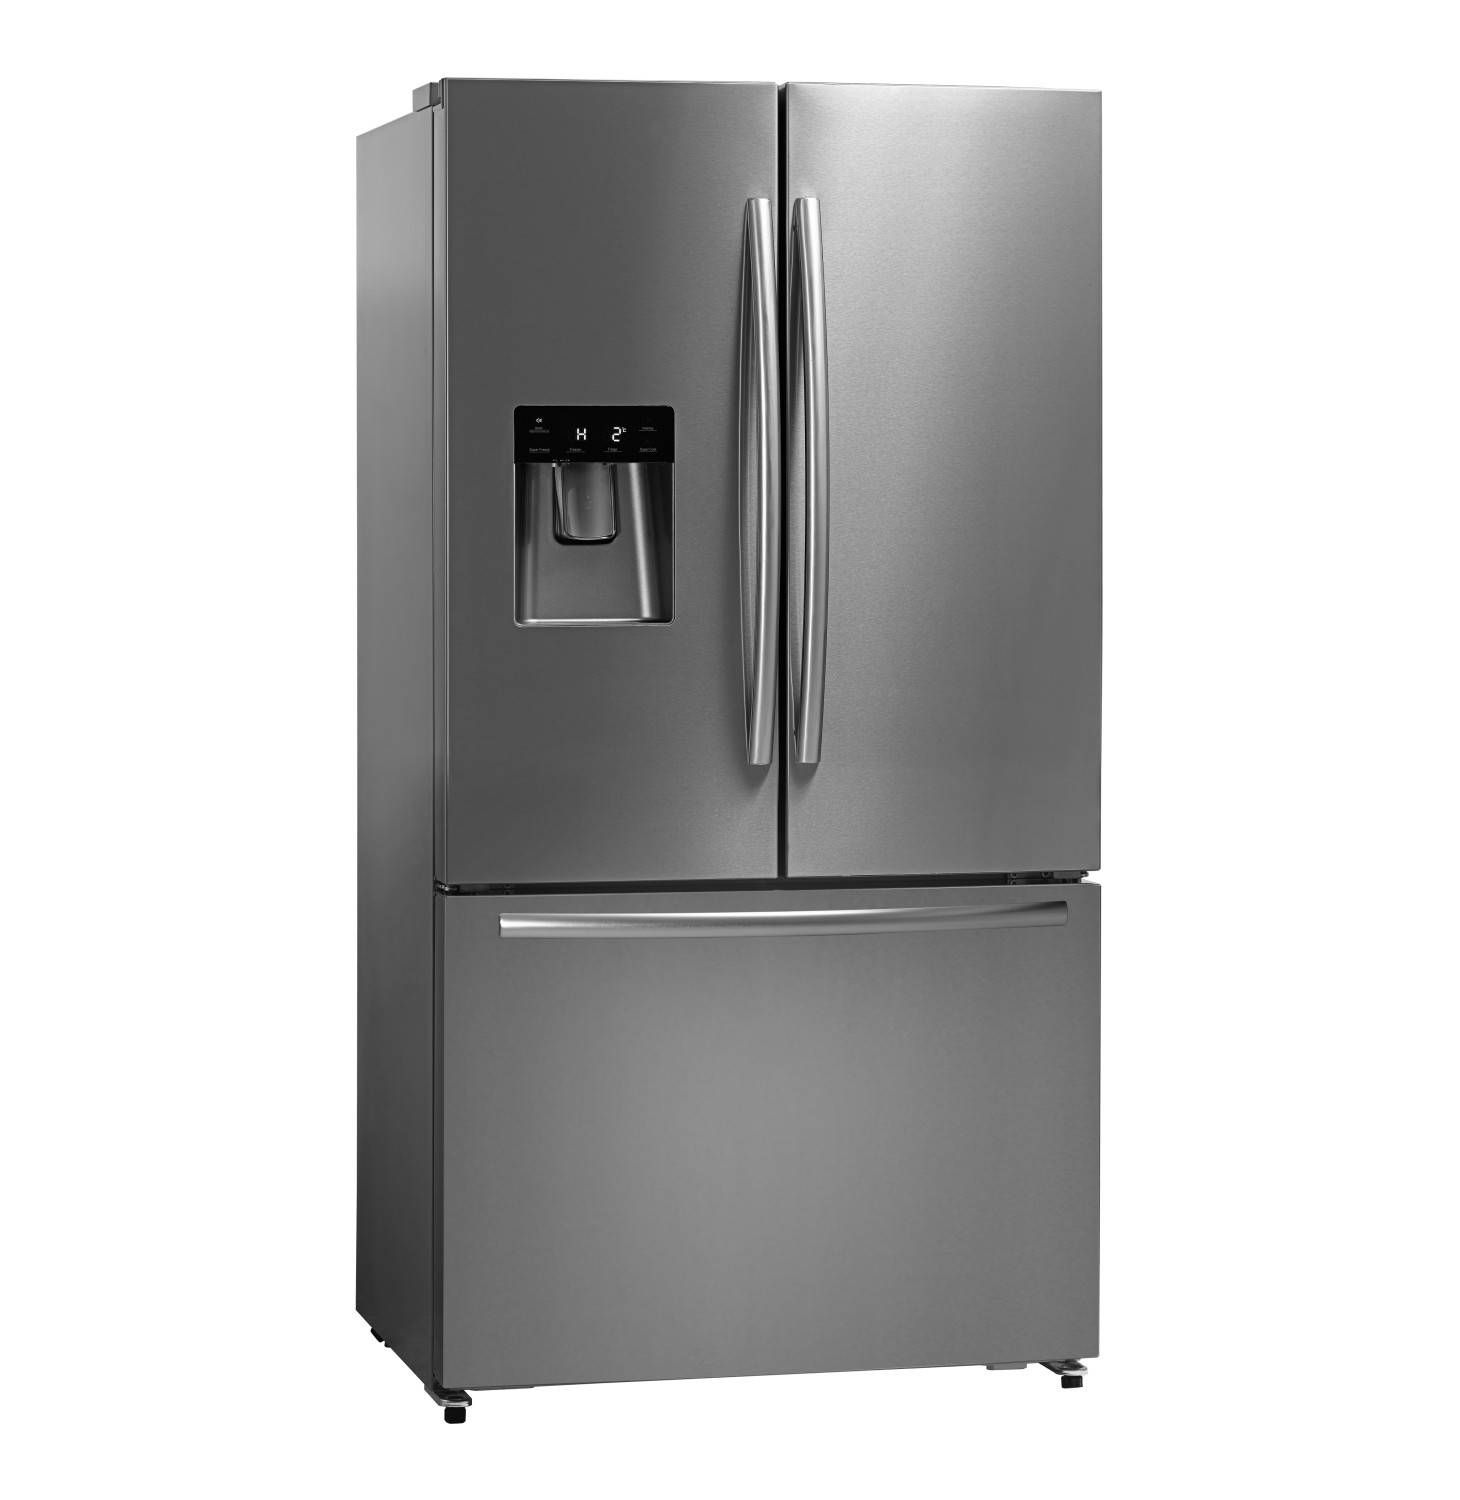 Uncategorized Defy Kitchen Appliances defy side by fridgefreezer with water dispenser makro hisense french door online